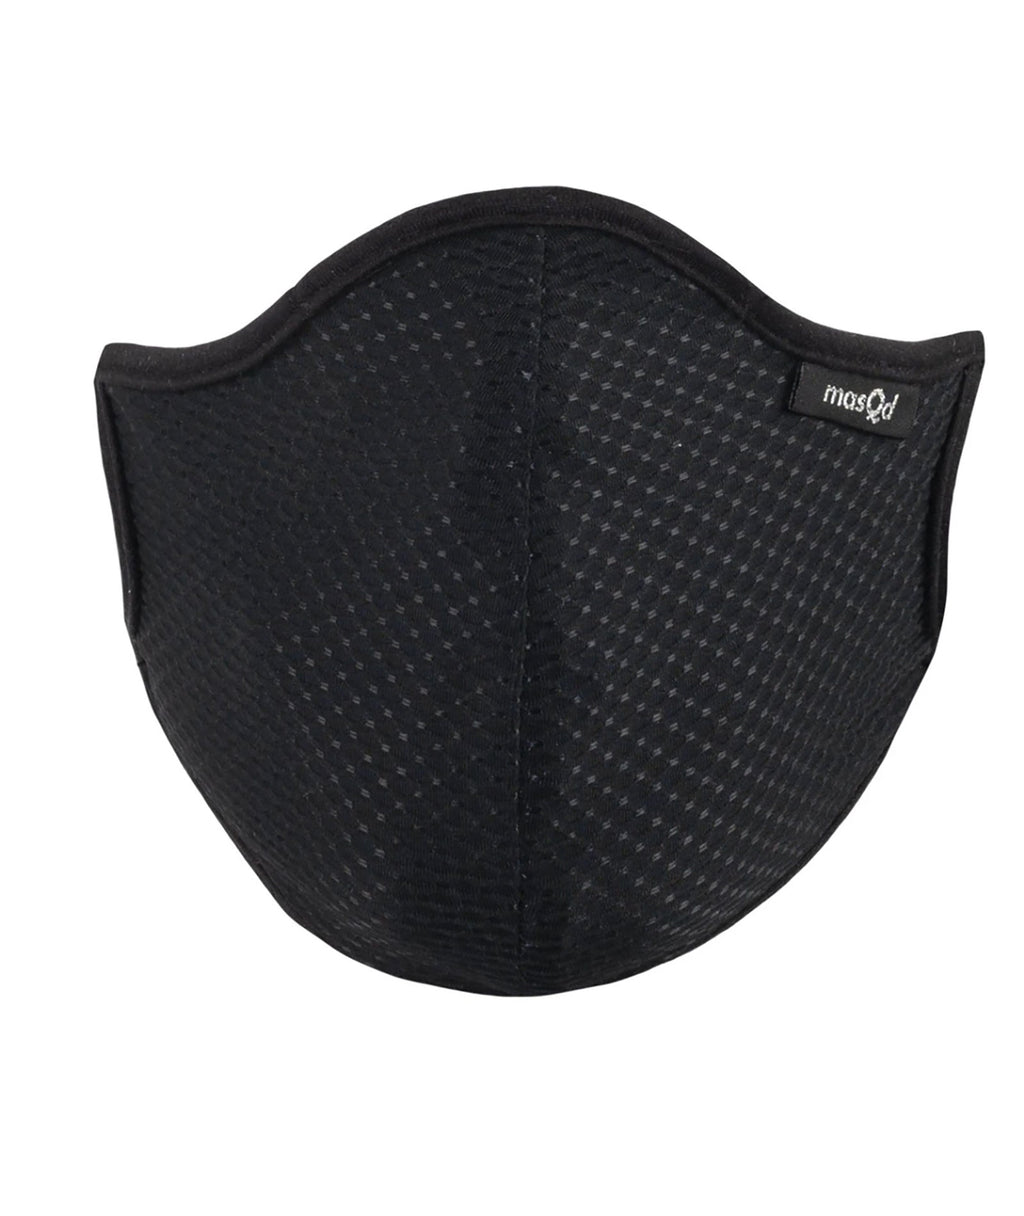 masQd Adults Mask With Filter Pocket Ultrasport Black